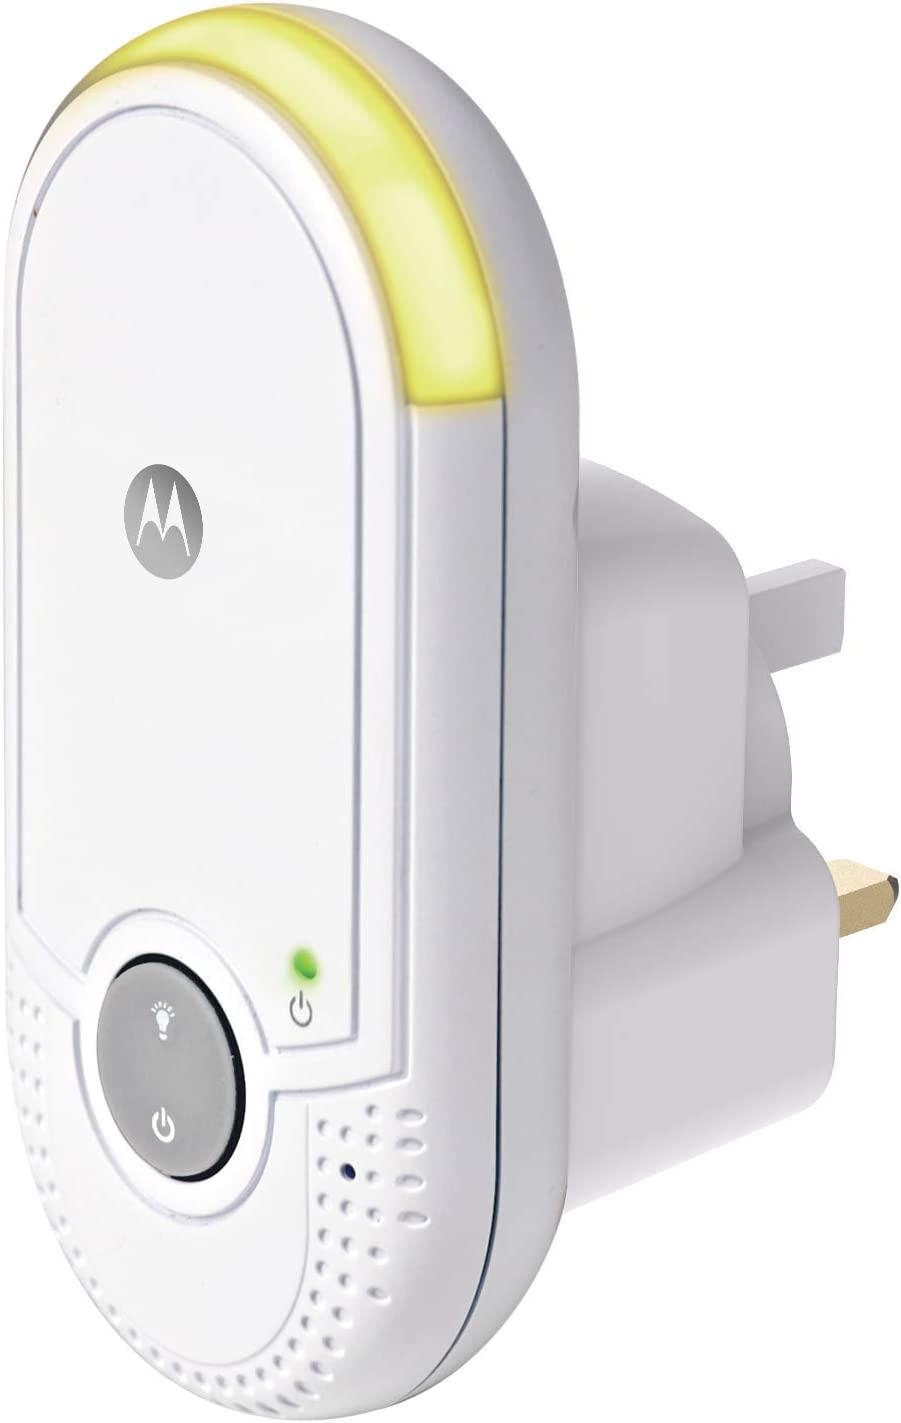 MBP 8 1 Pack Motorola Digital Audio Baby Travel Monitor